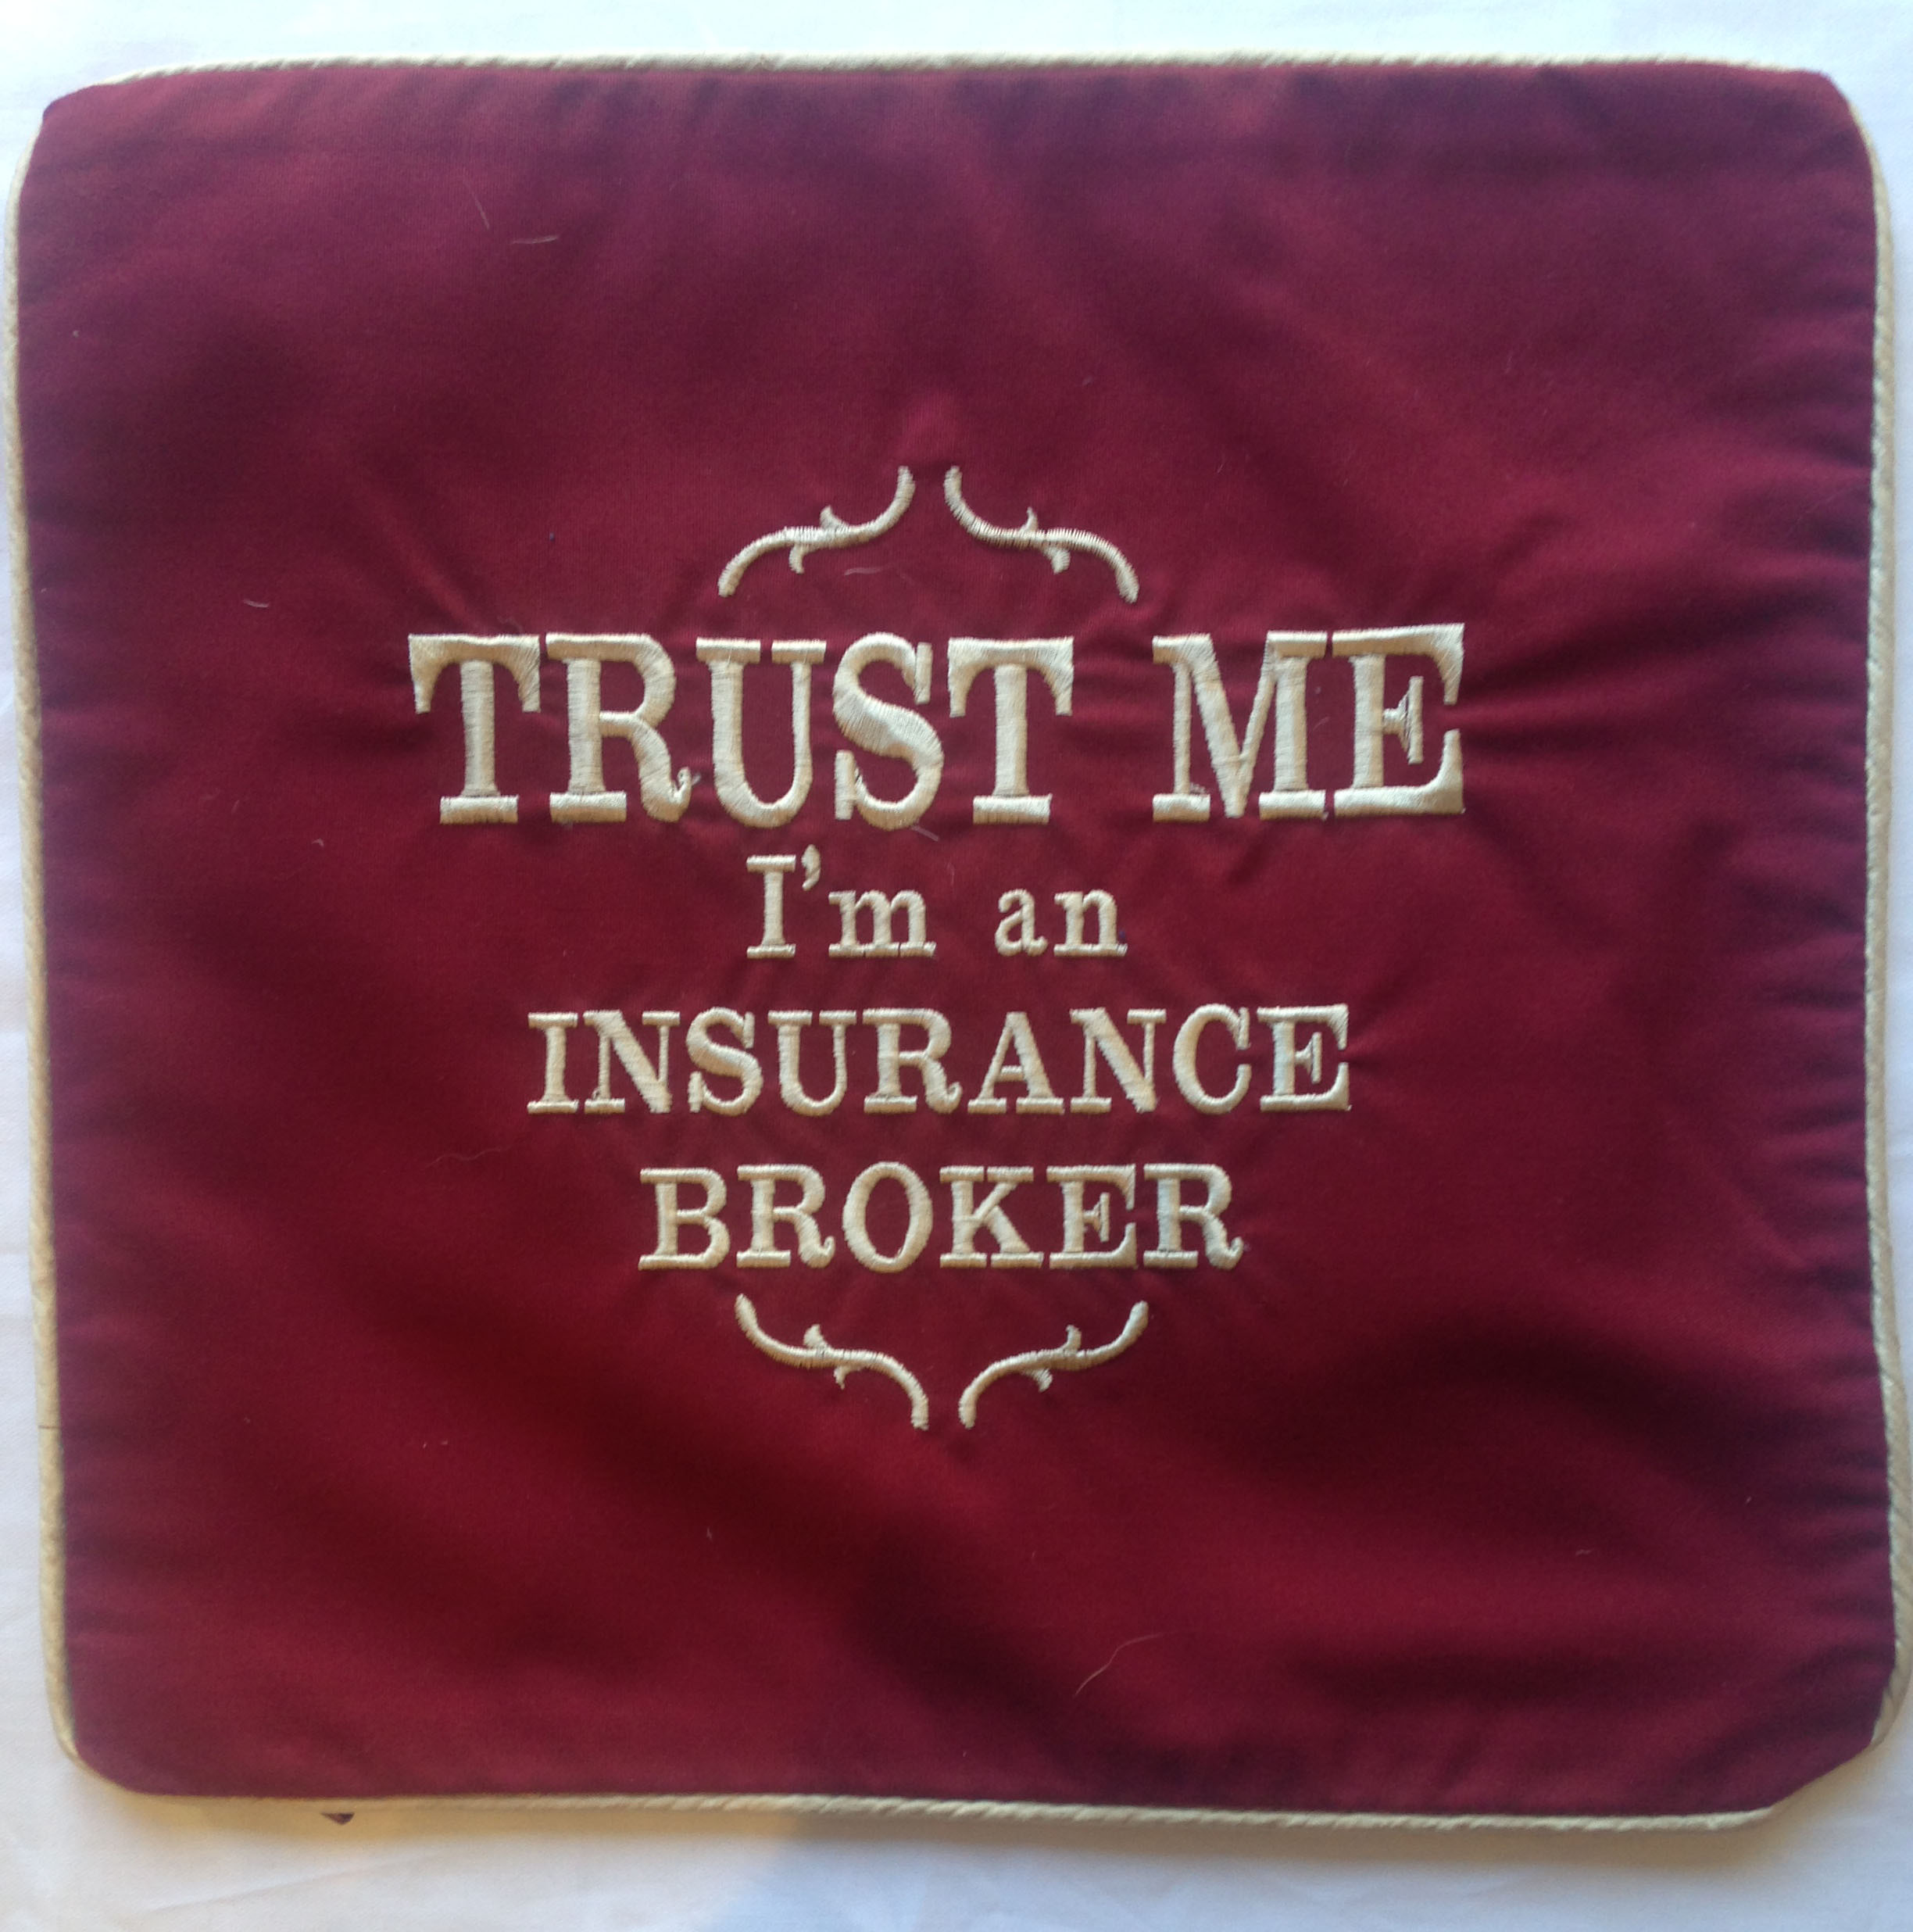 Aie insurance brokers p s